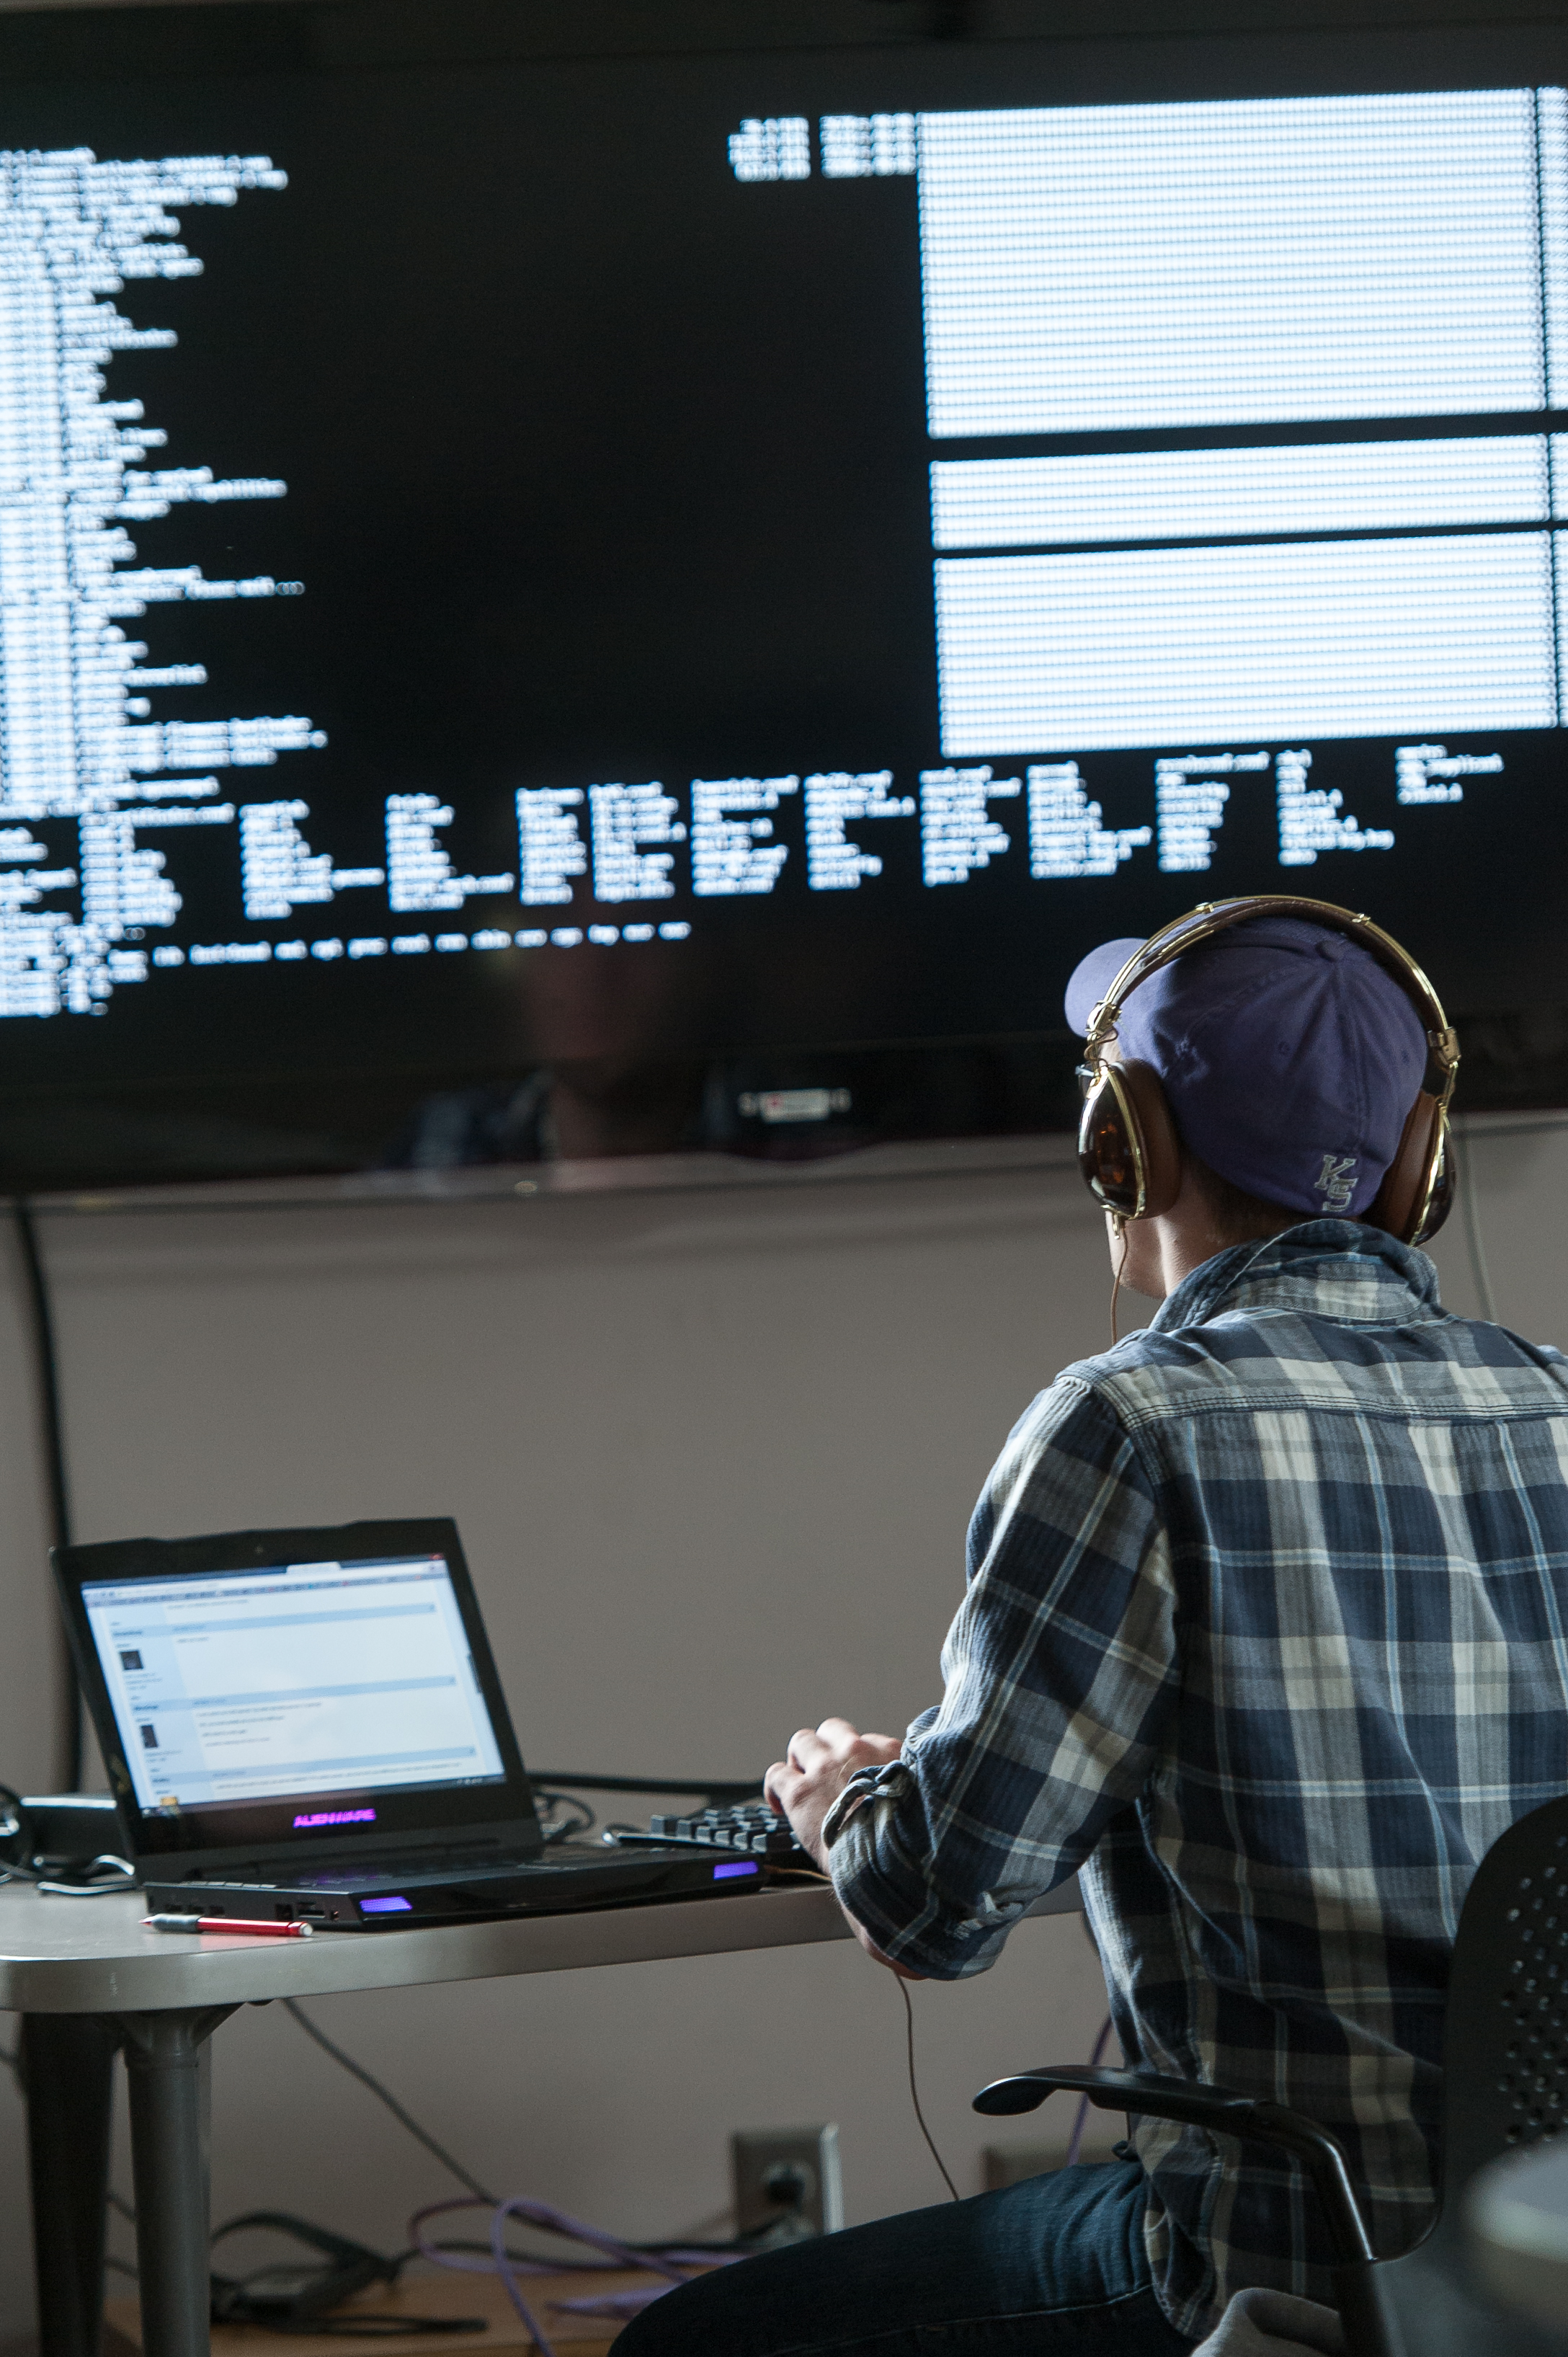 Criminologist Hacks The Hacker Explores Meaning Of